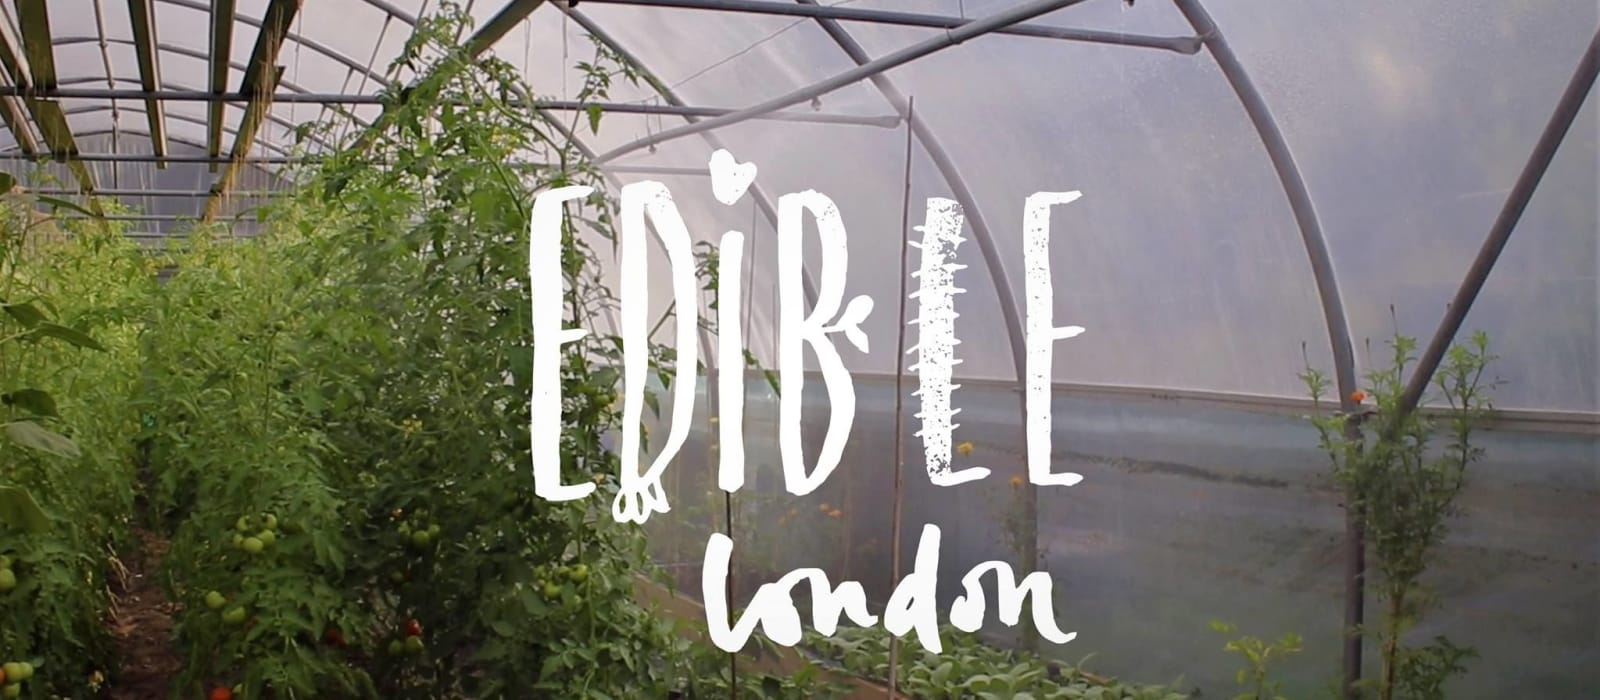 First COVID-19 fund grant goes to Edible London